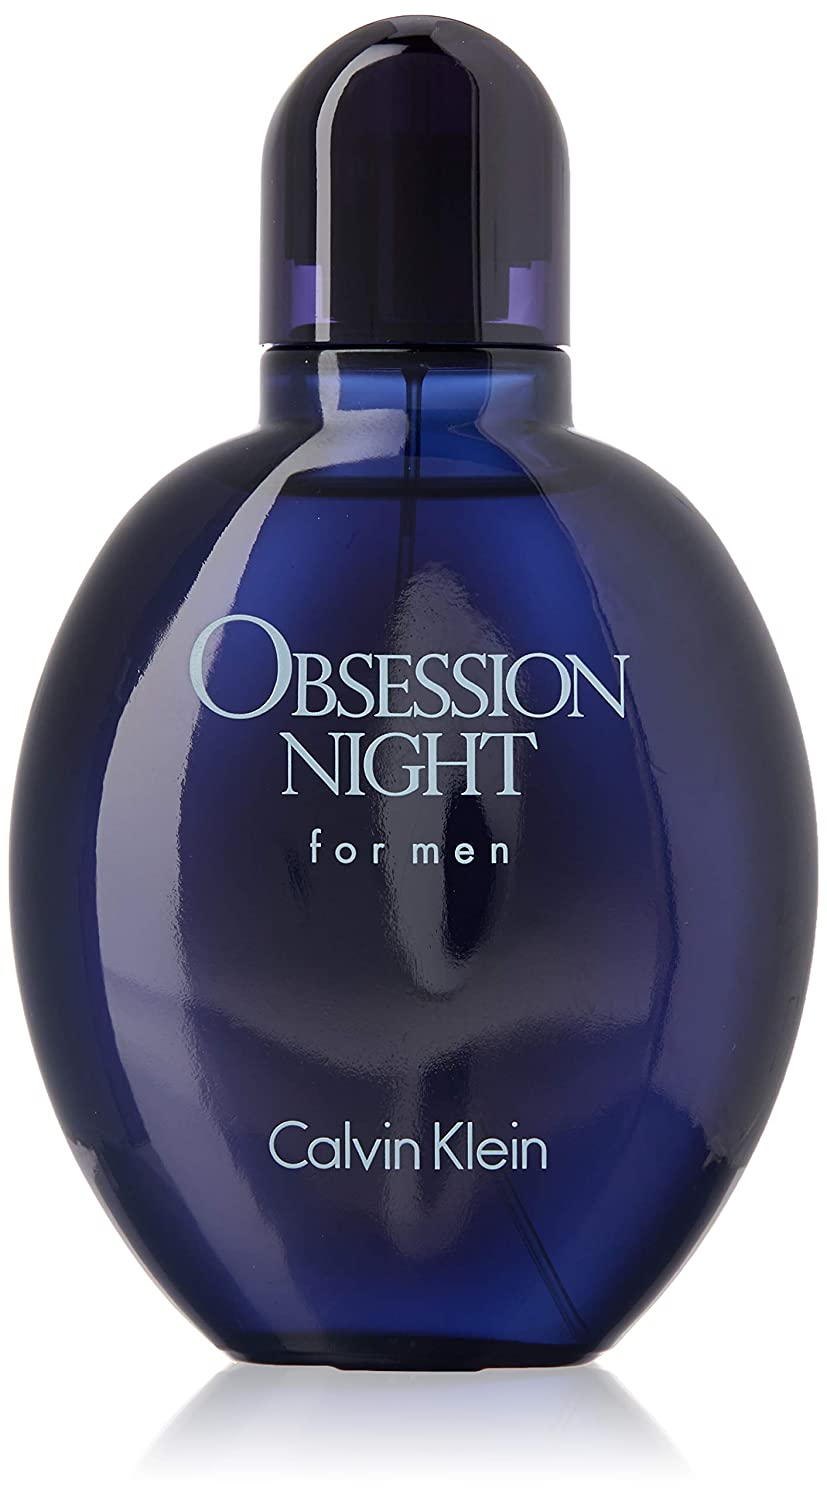 Calvin Klein Obsession Night For Men Edt Vapo 125 Ml 1 Unidad 120 g